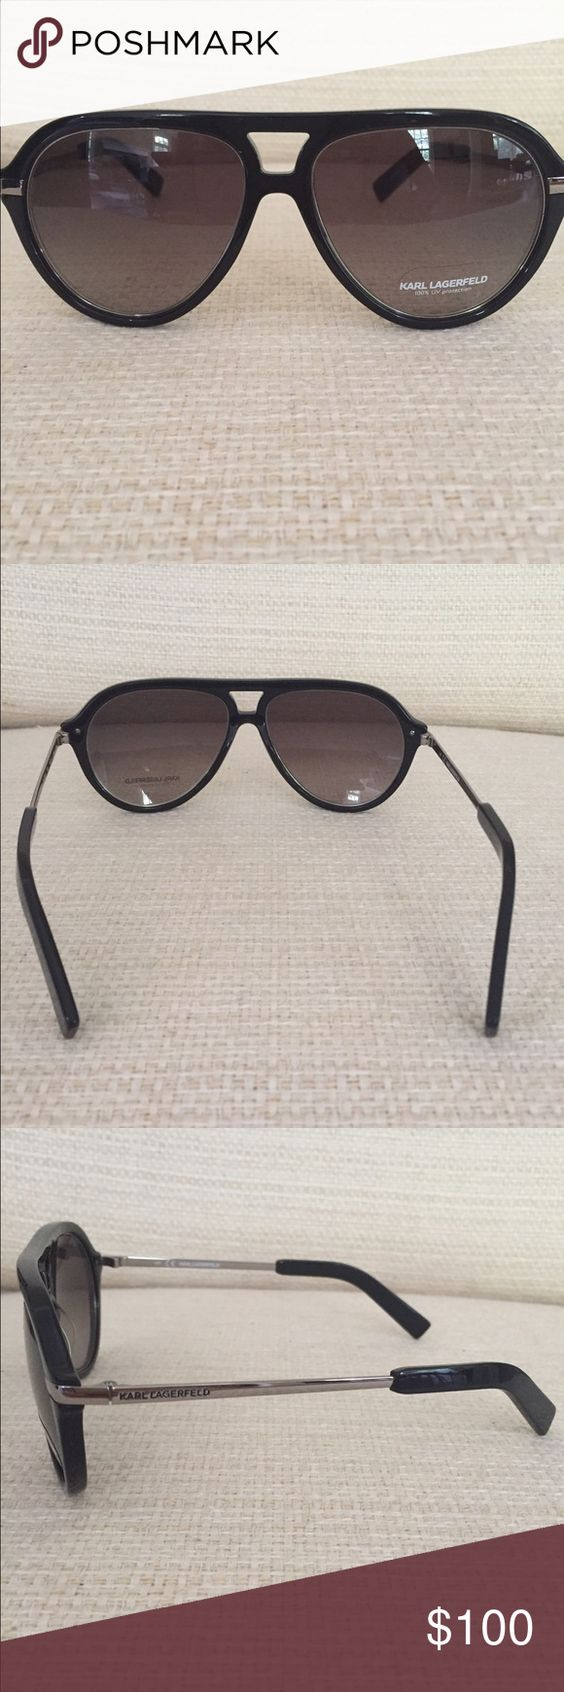 Women's Karl Lagerfeld Sunglasses New, Never worn. Comes with case. Karl Lagerfeld Accessories Sunglasses